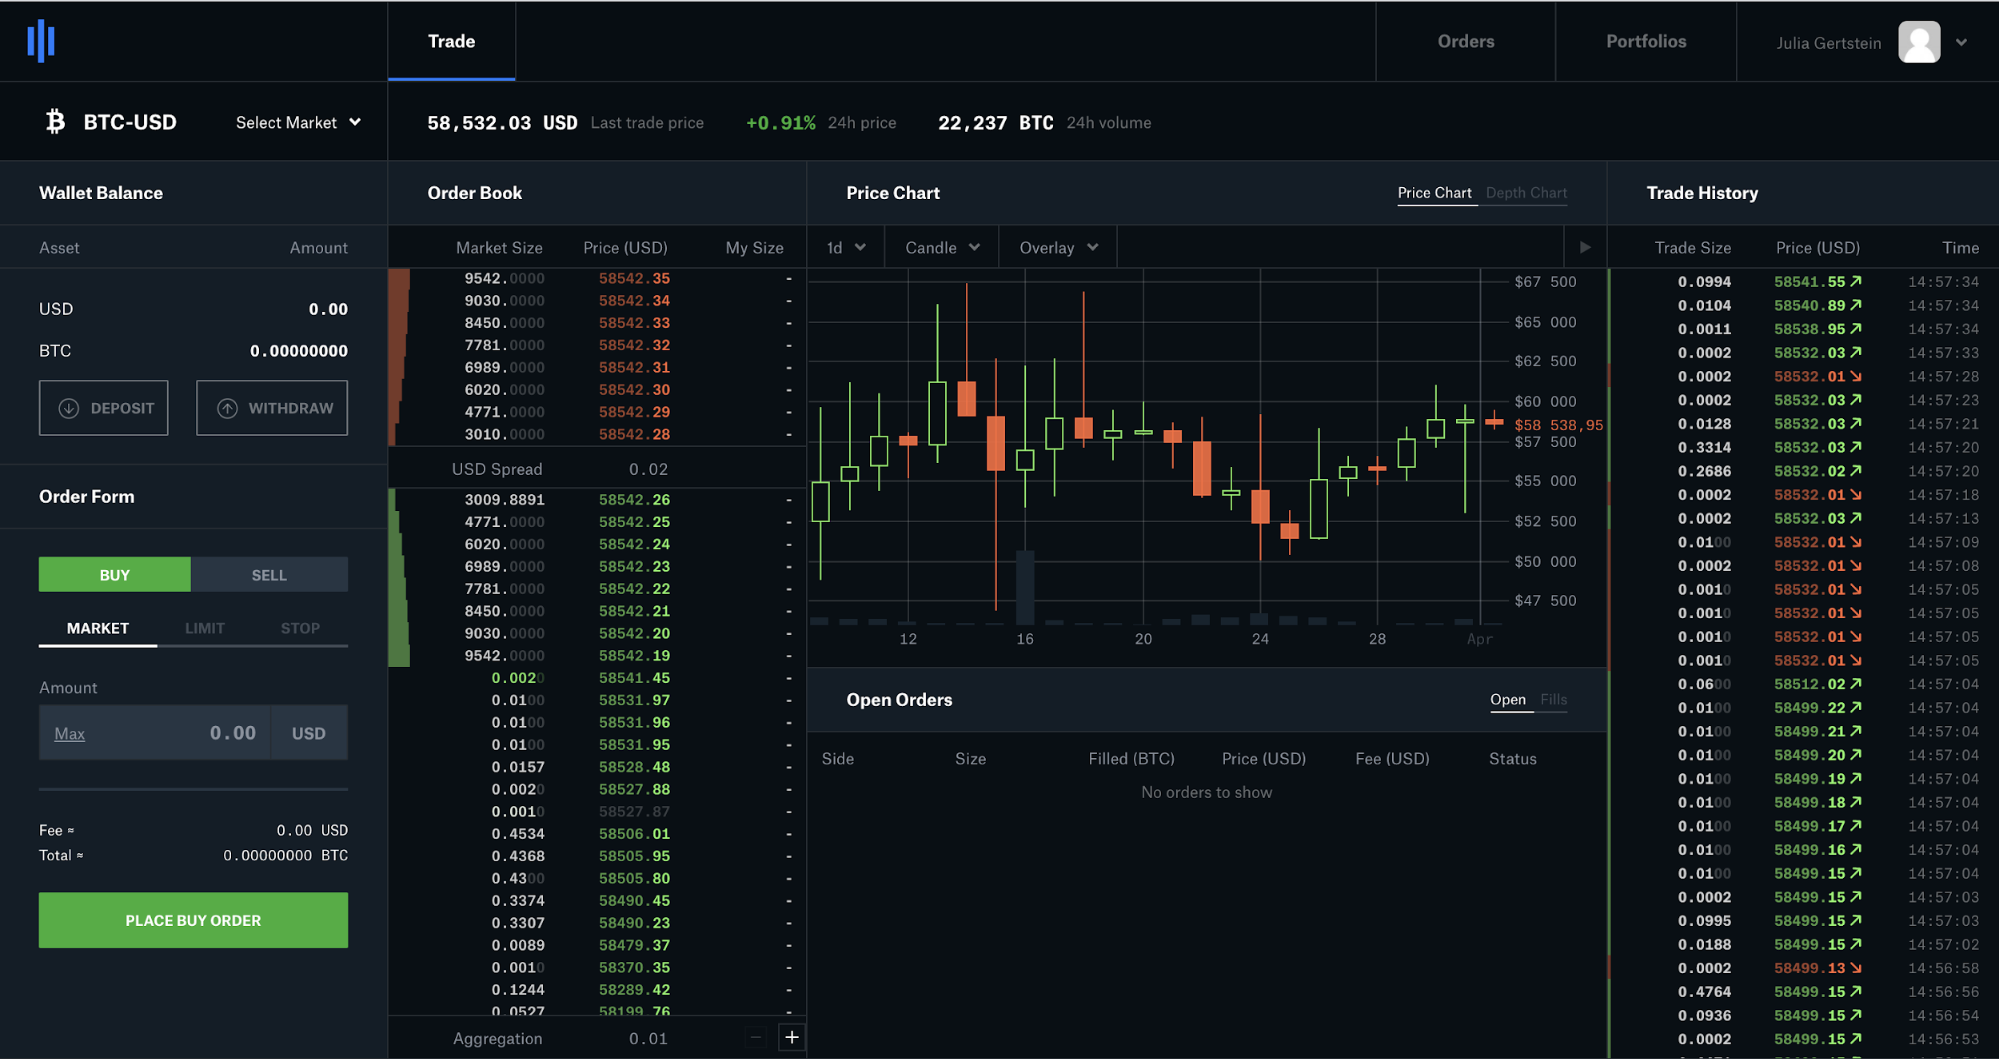 Trading on Coinbase Pro